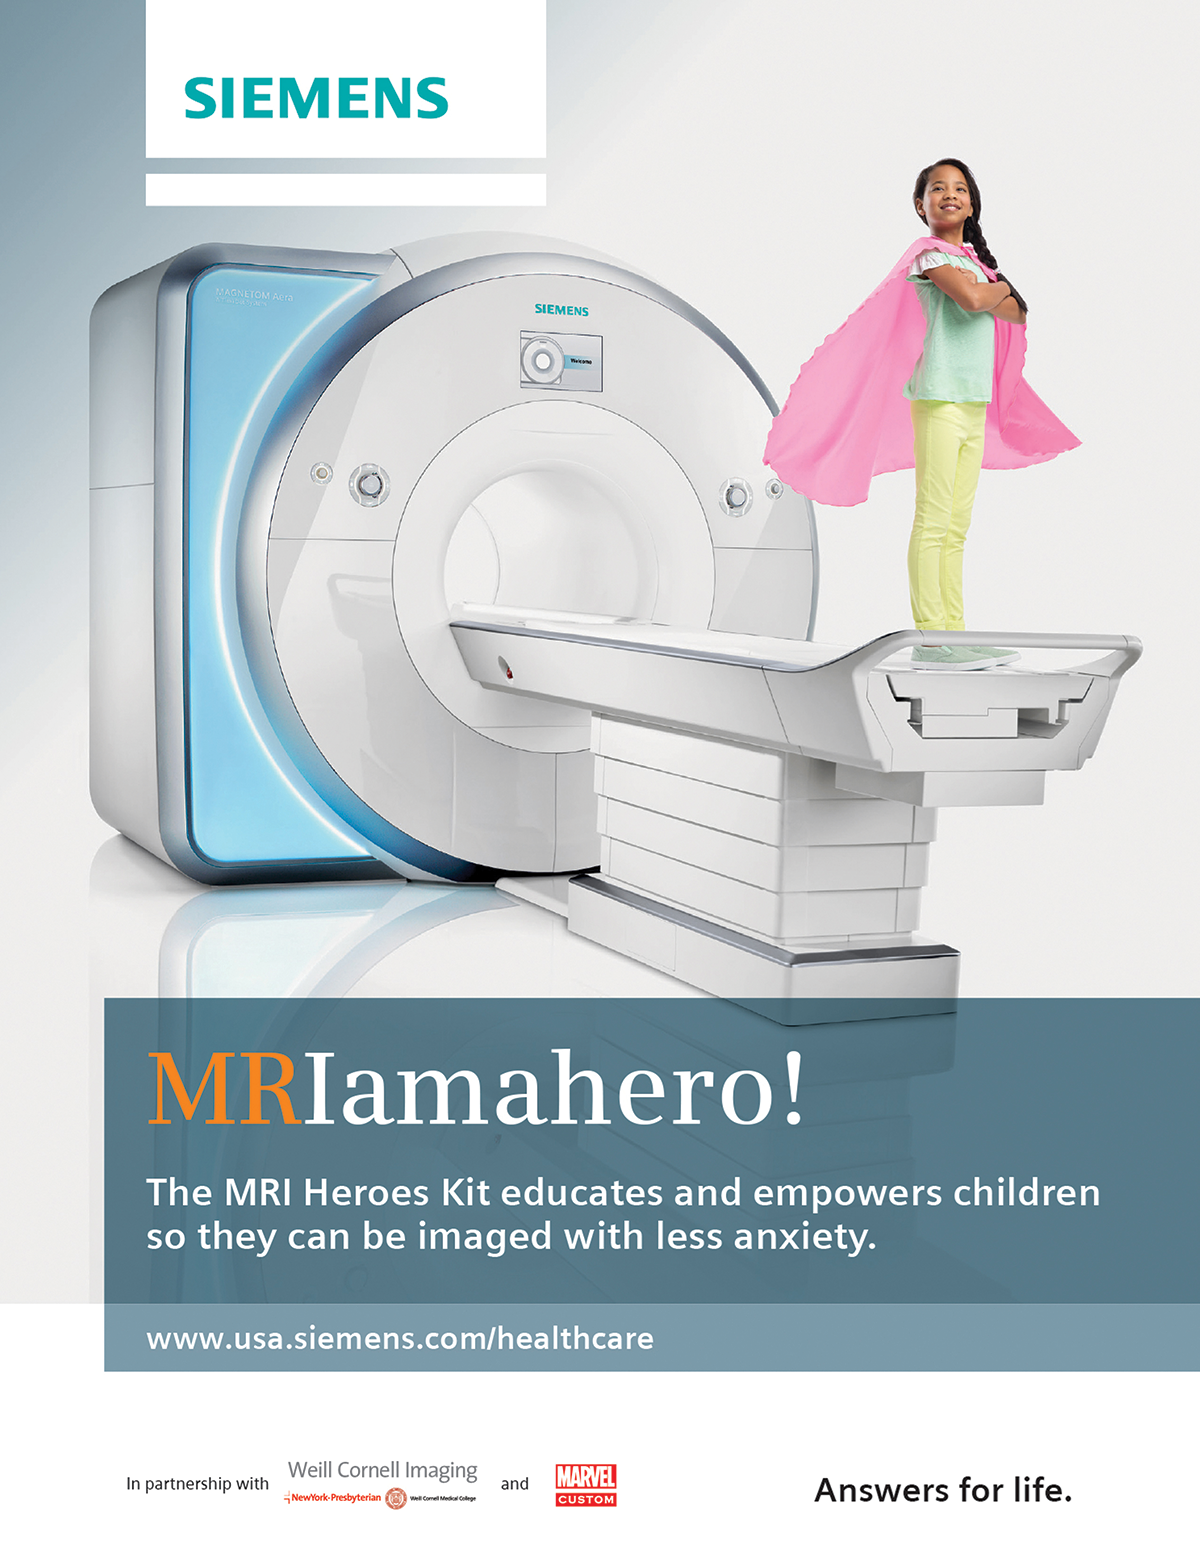 Calcium made MRI scans fun for kids and Siemens